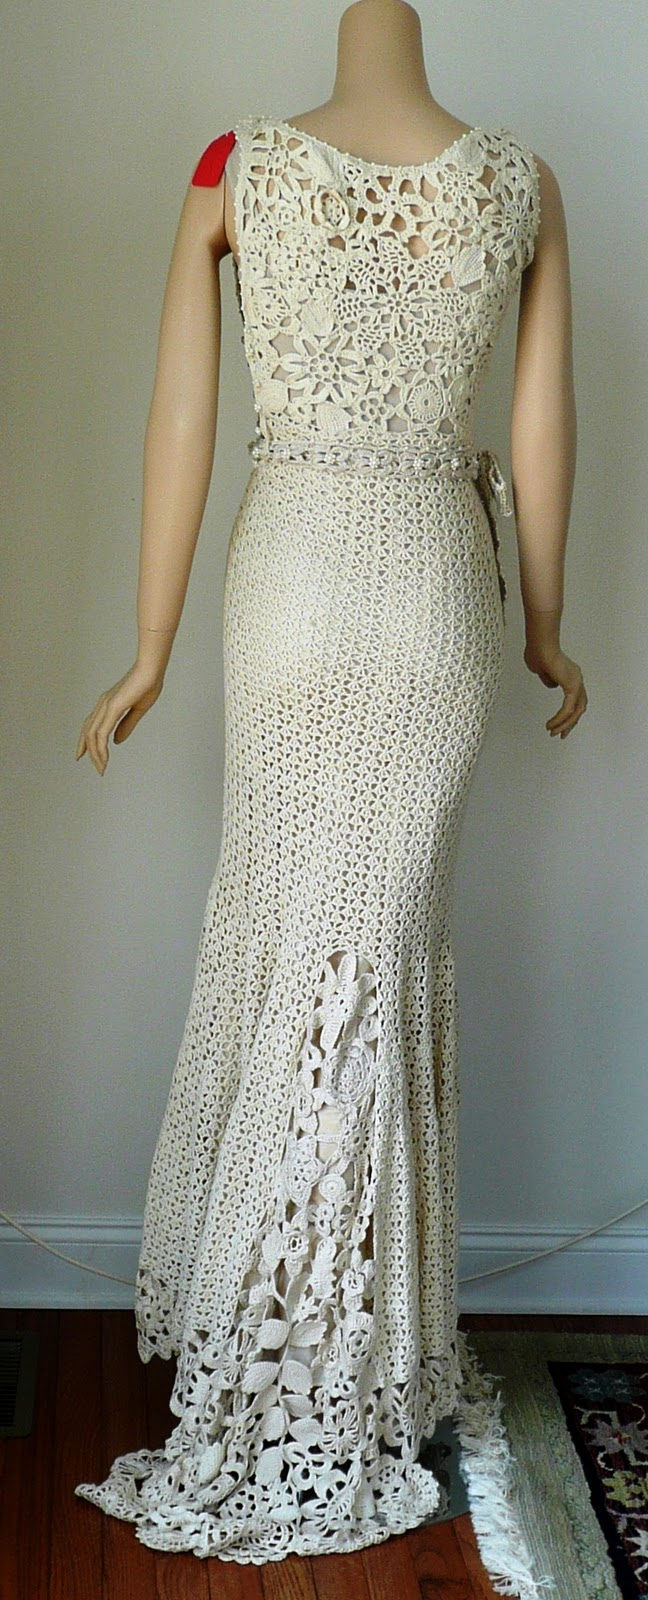 Crochet dress pattern wedding crochet patterns for Crochet wedding dress patterns